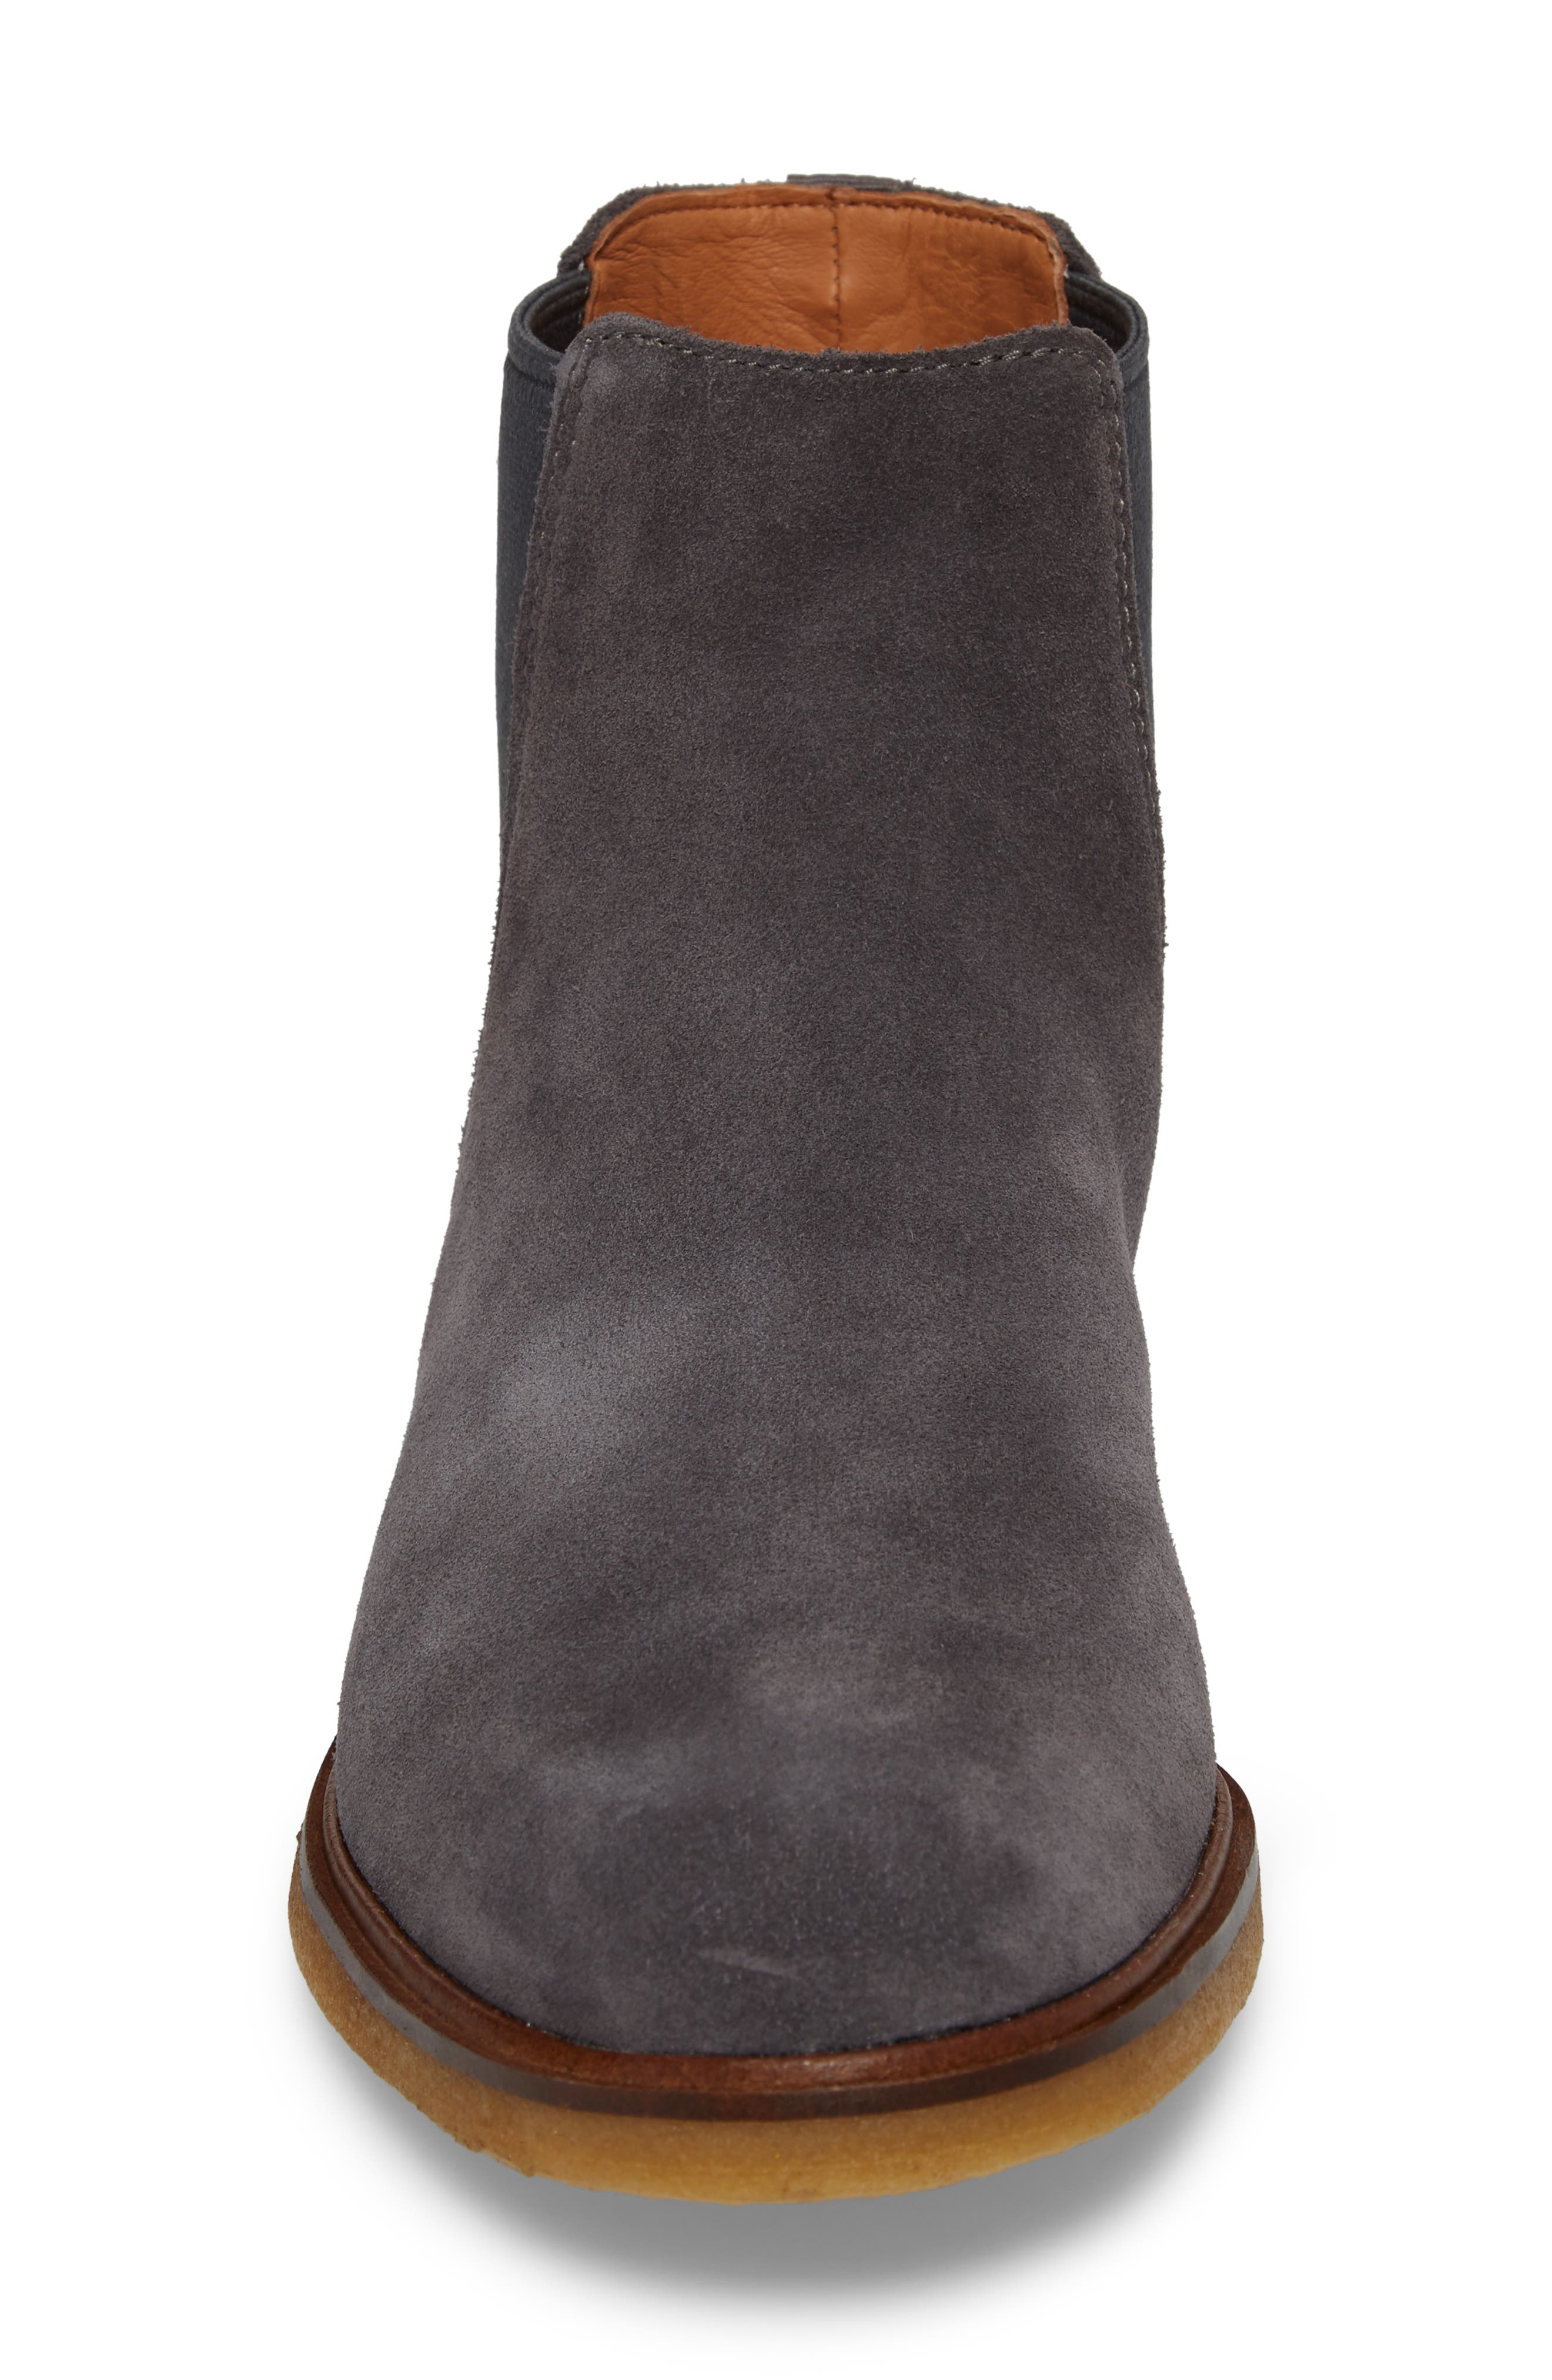 Clarkdale Chelsea Boot,                             Alternate thumbnail 4, color,                             GREY SUEDE